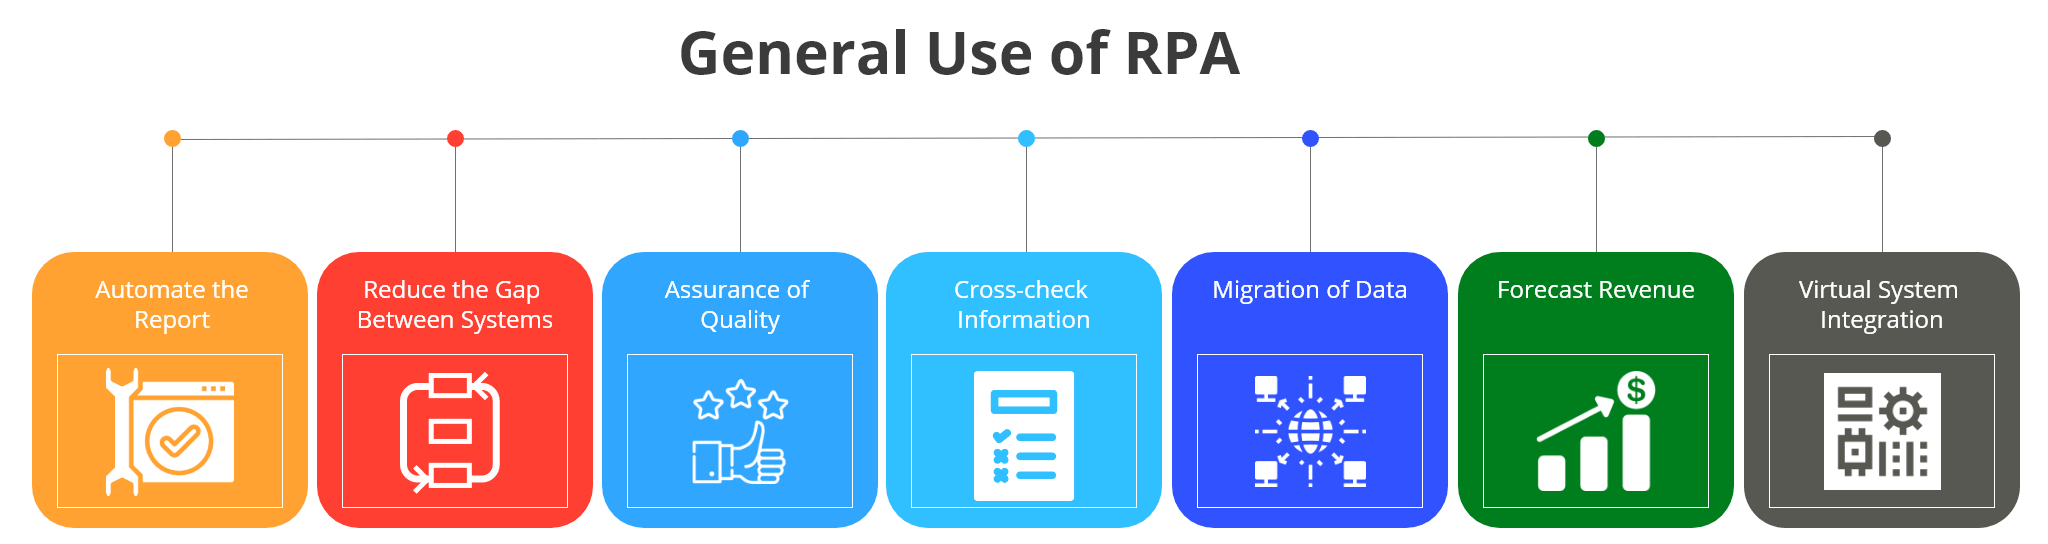 general use of rpa